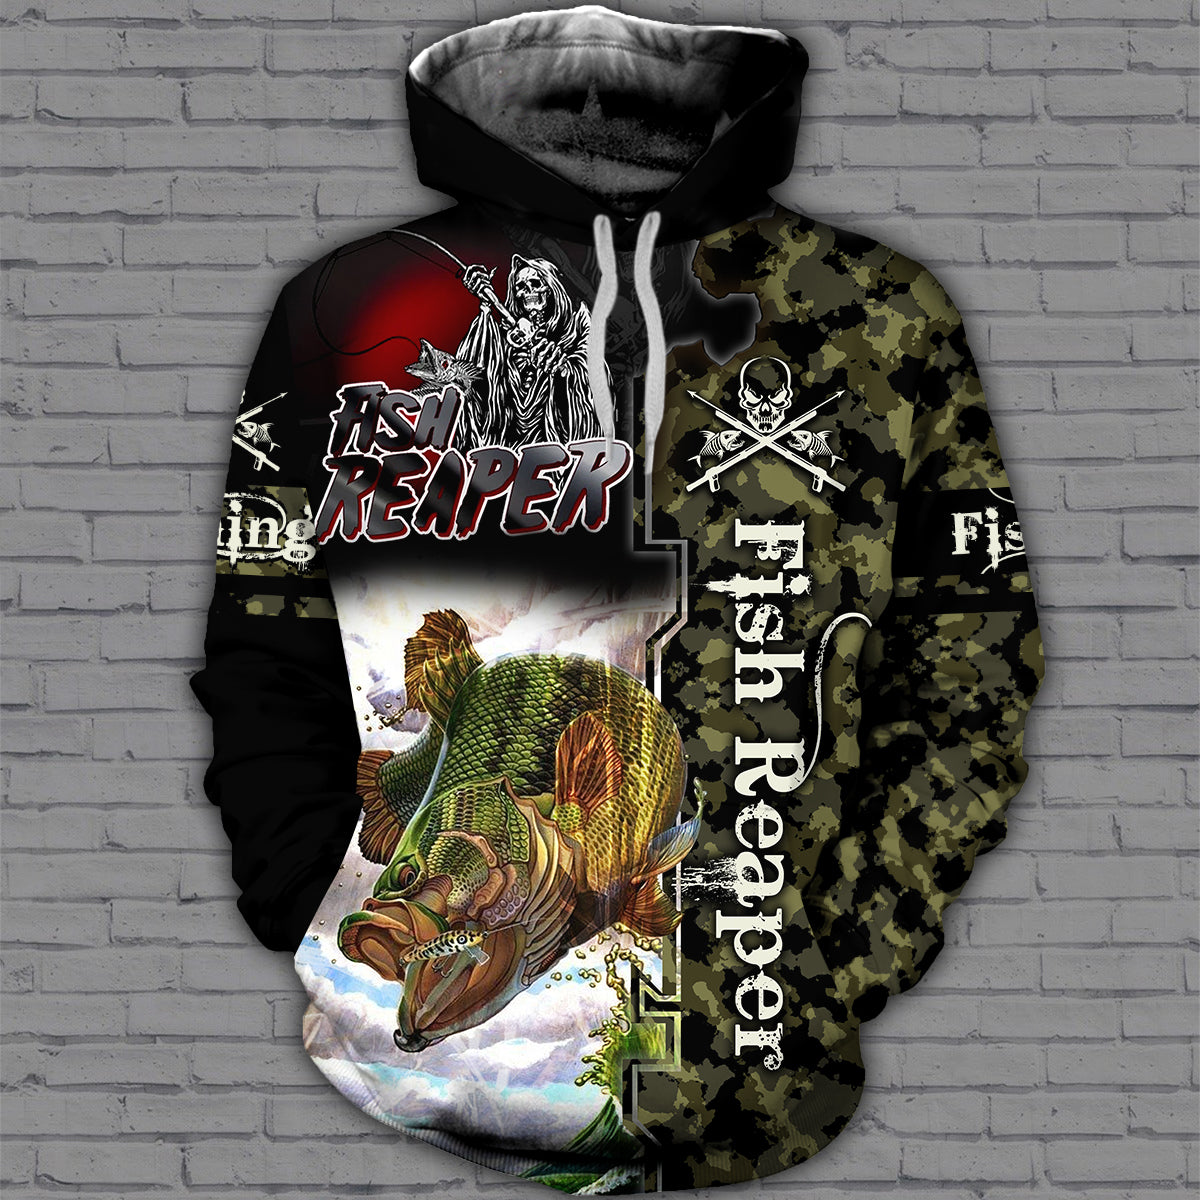 Fishing 3D All Over Printed Hoodie, T-Shirt, Sweater - datr141202